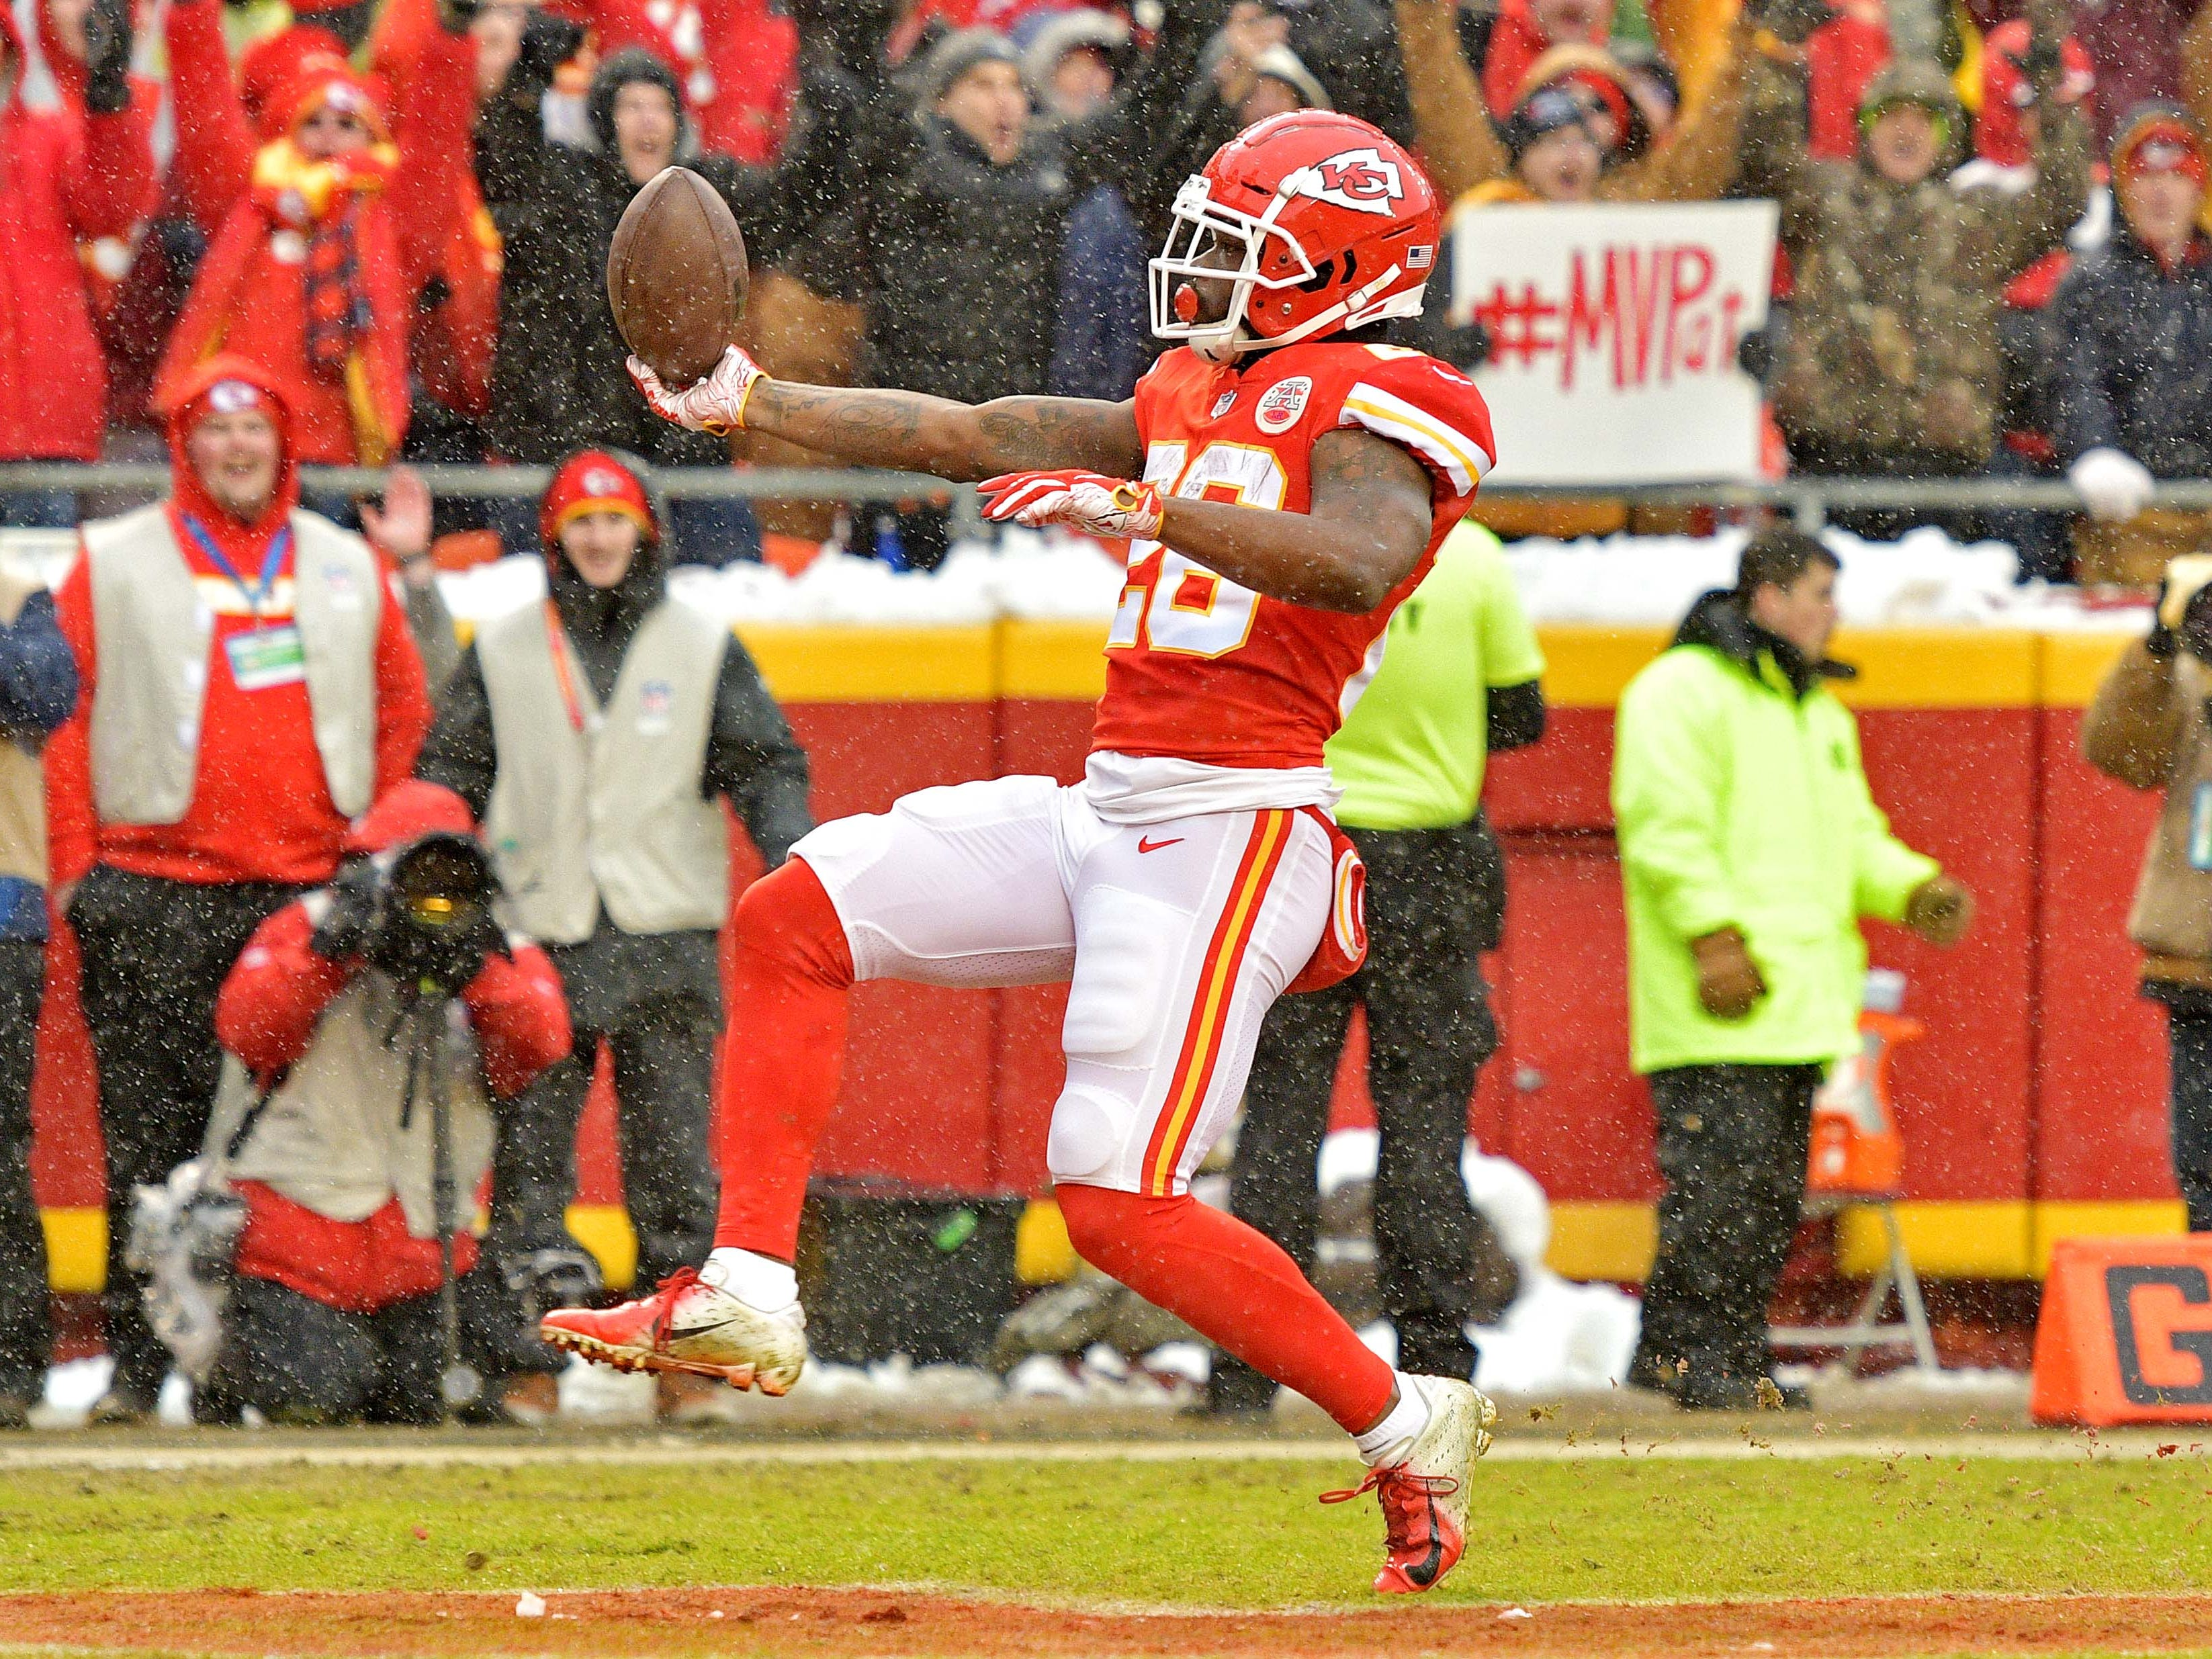 Kansas City Chiefs running back Damien Williams (26) scores a touchdown  during the first quarter against the Indianapolis Colts in an AFC Divisional playoff football game at Arrowhead Stadium.